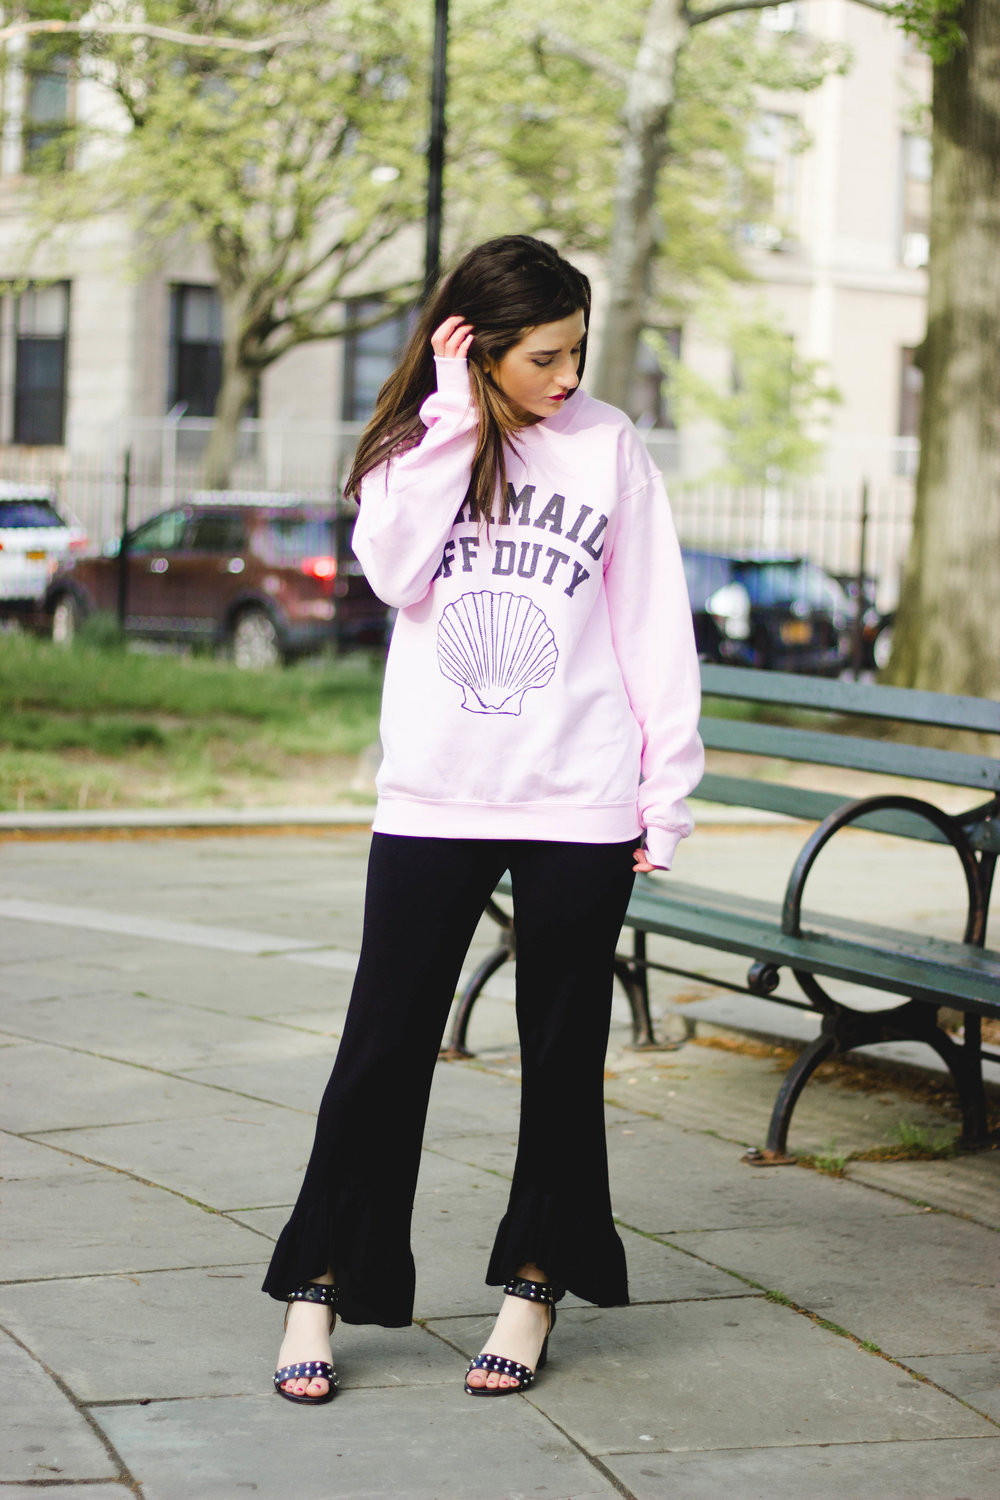 Mermaid Off Duty Sweatshirt Why I Unfollowed My Favorite Bloggers Esther Santer Fashion Blog NYC Street Style Blogger Outfit OOTD Trendy Ruffle Pants Studded Black Sandals Summer  Spring Flowers Pink Girly Women Hair Zara Feminine Wear Shopping Buy.jpg